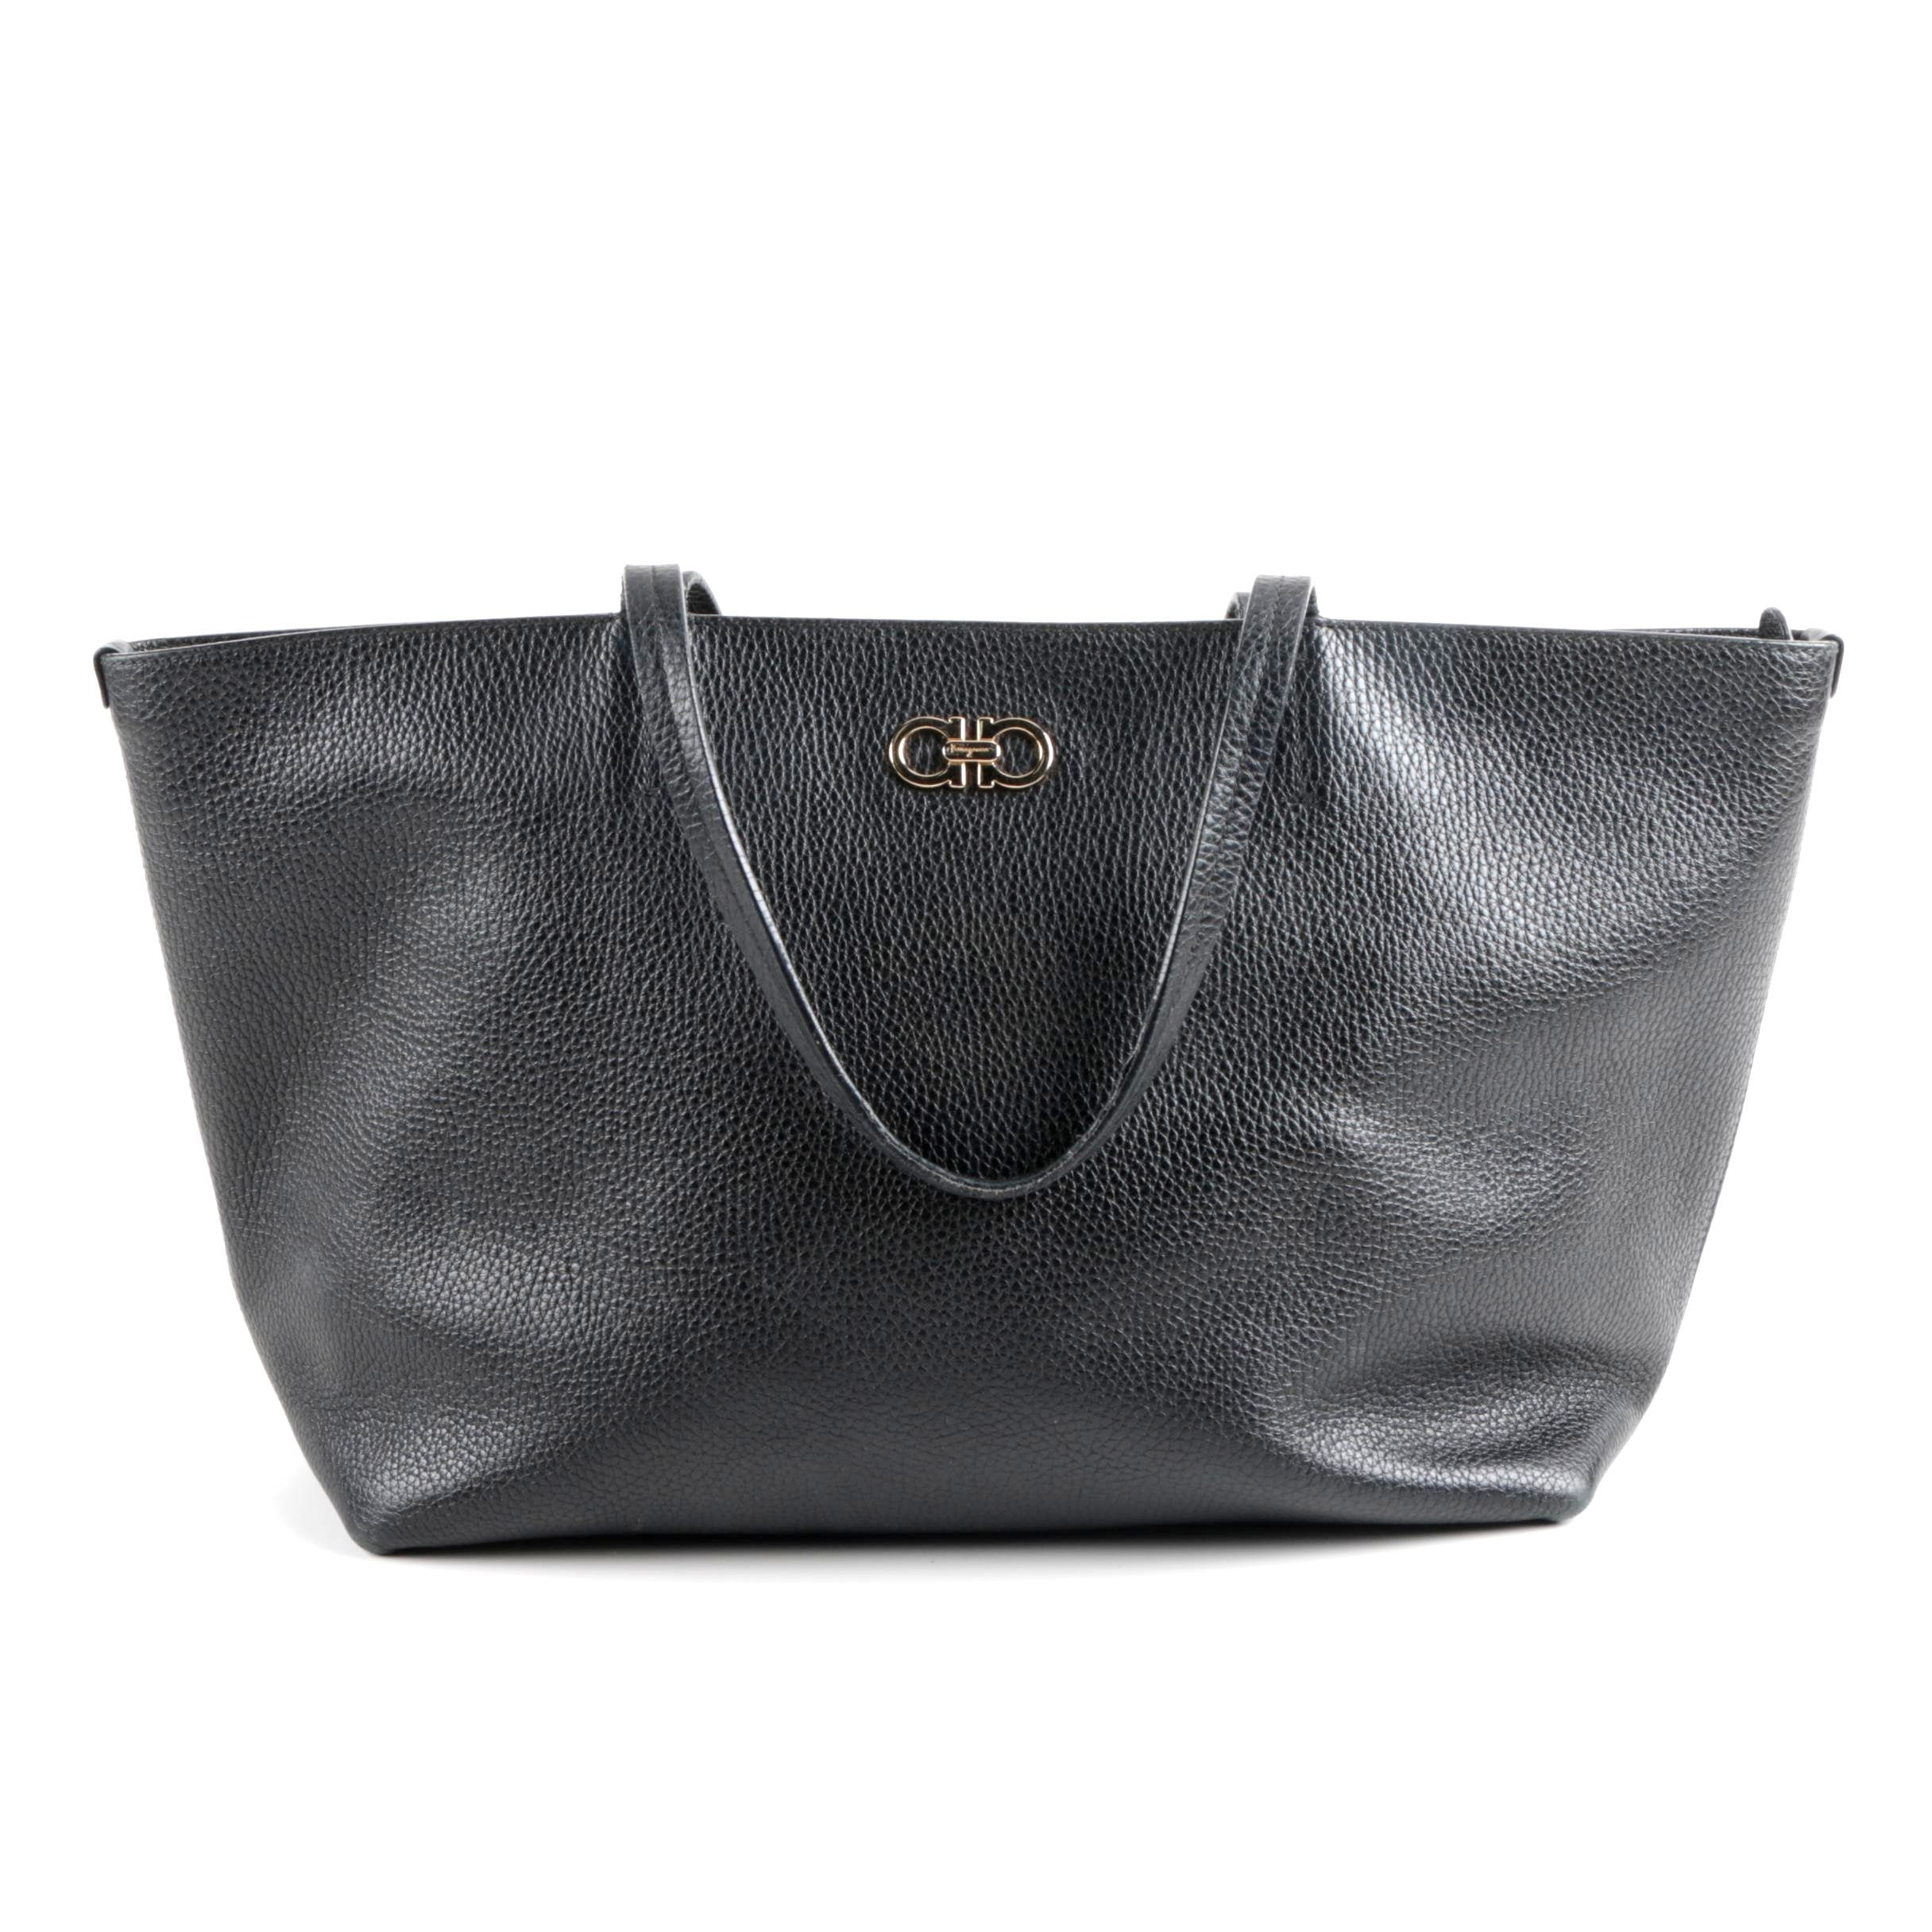 Salvatore Ferragamo Bice East-West Tote Bag in Black Pebbled Leather